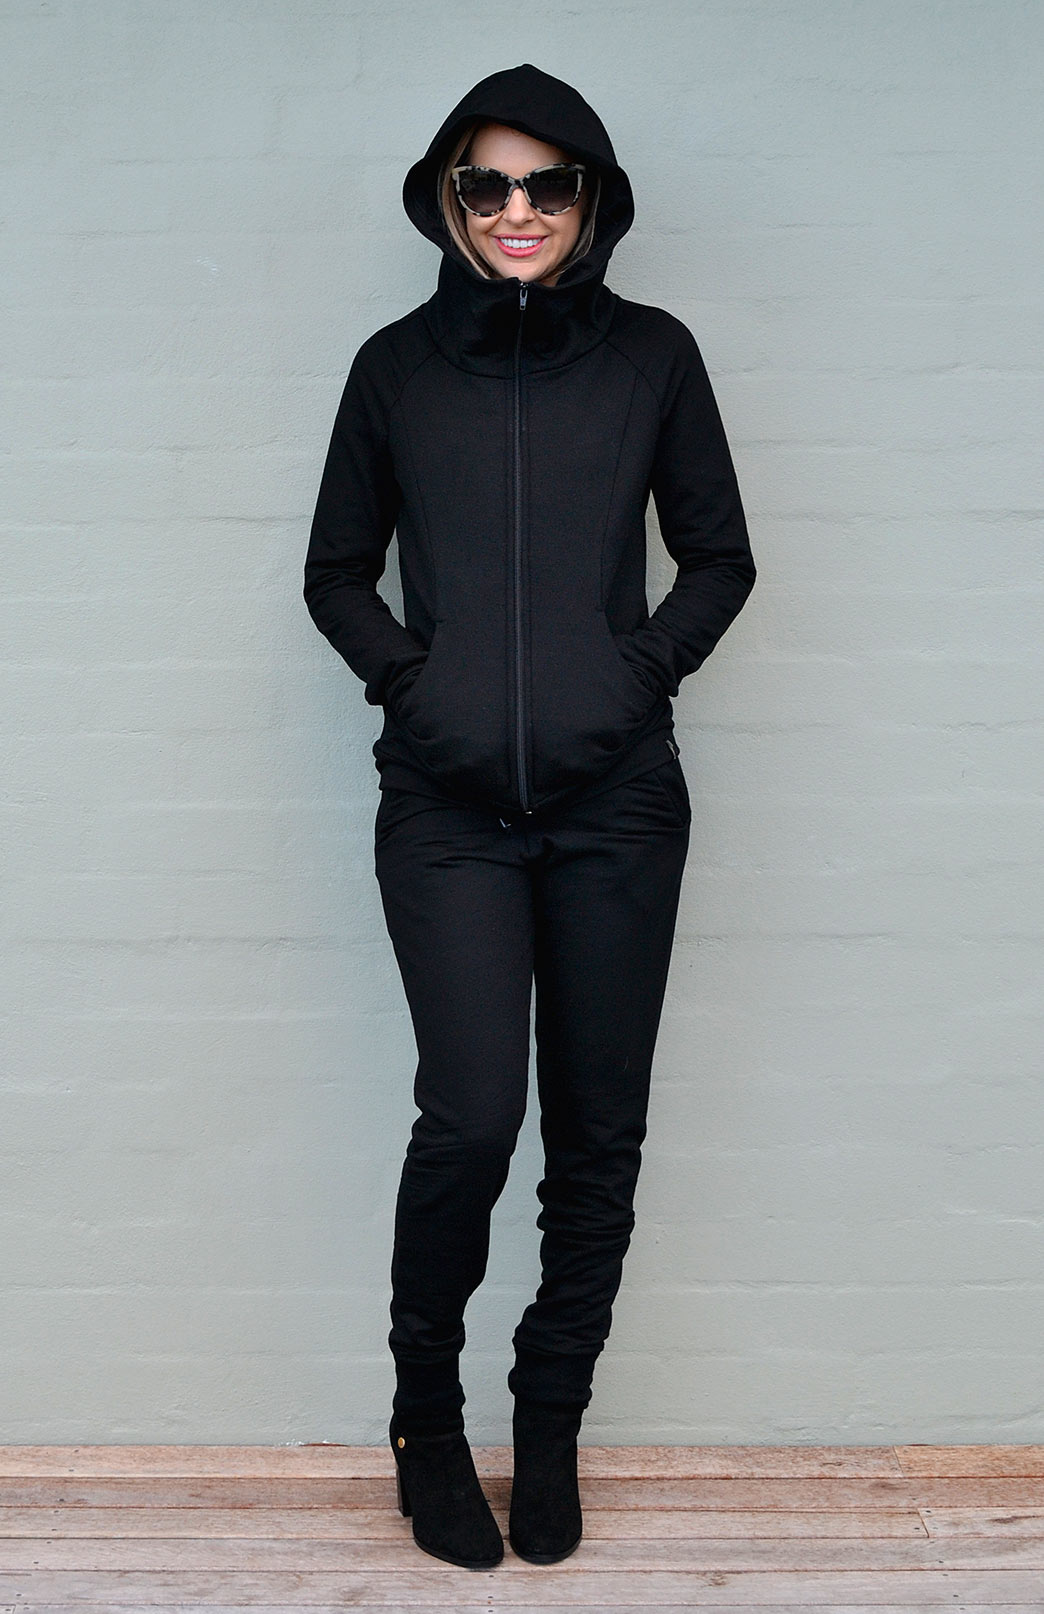 Track Set - Women's Black Wool Track Set of Lounge Pants and Fitted Hoody Jacket - Smitten Merino Tasmania Australia